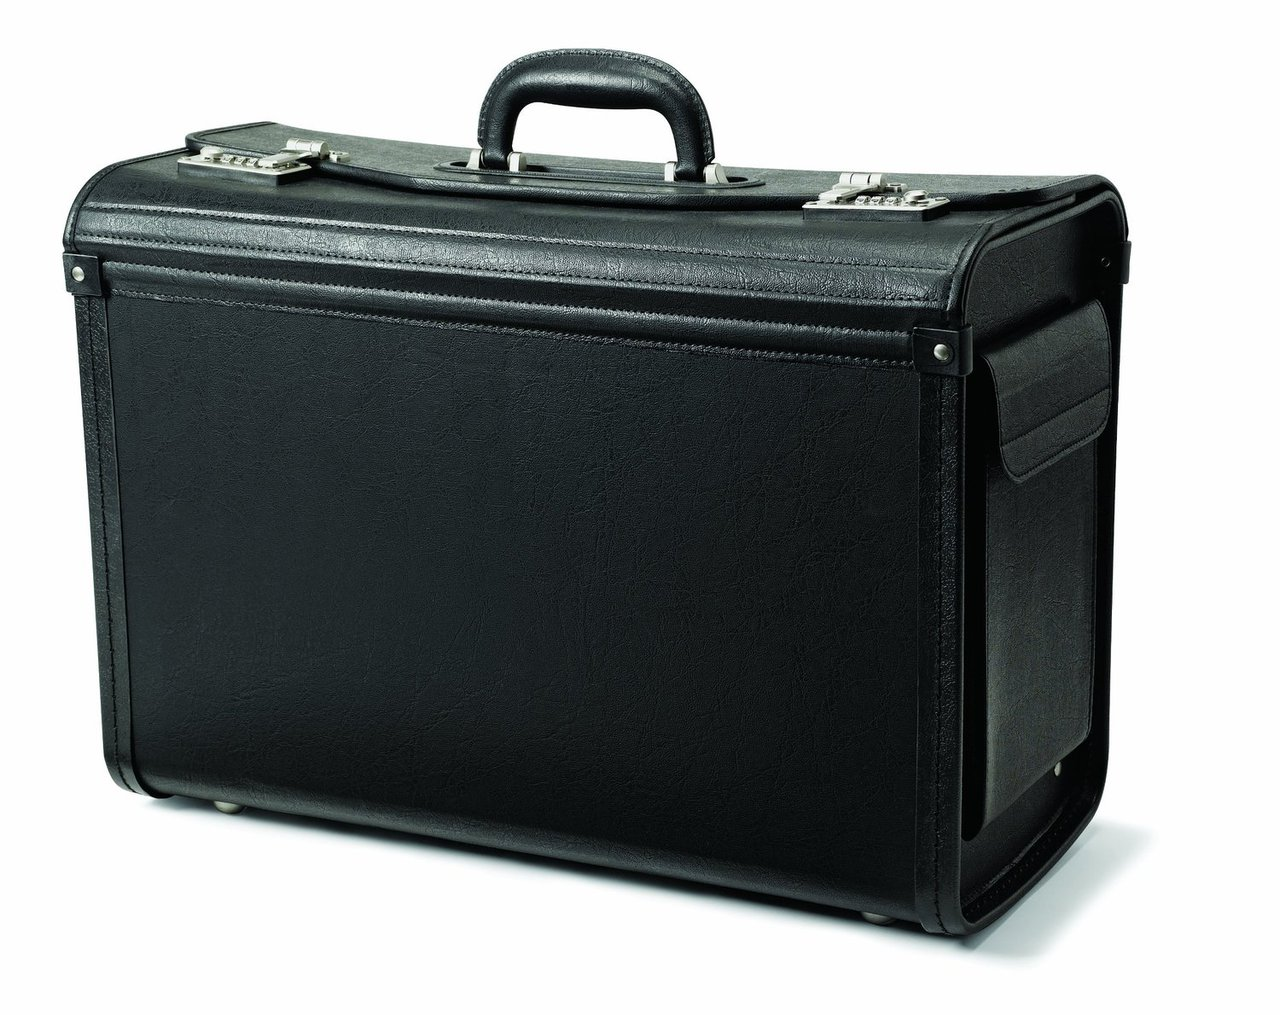 b5a395cd592828 Samsonite Pilot Catalog Case 15473